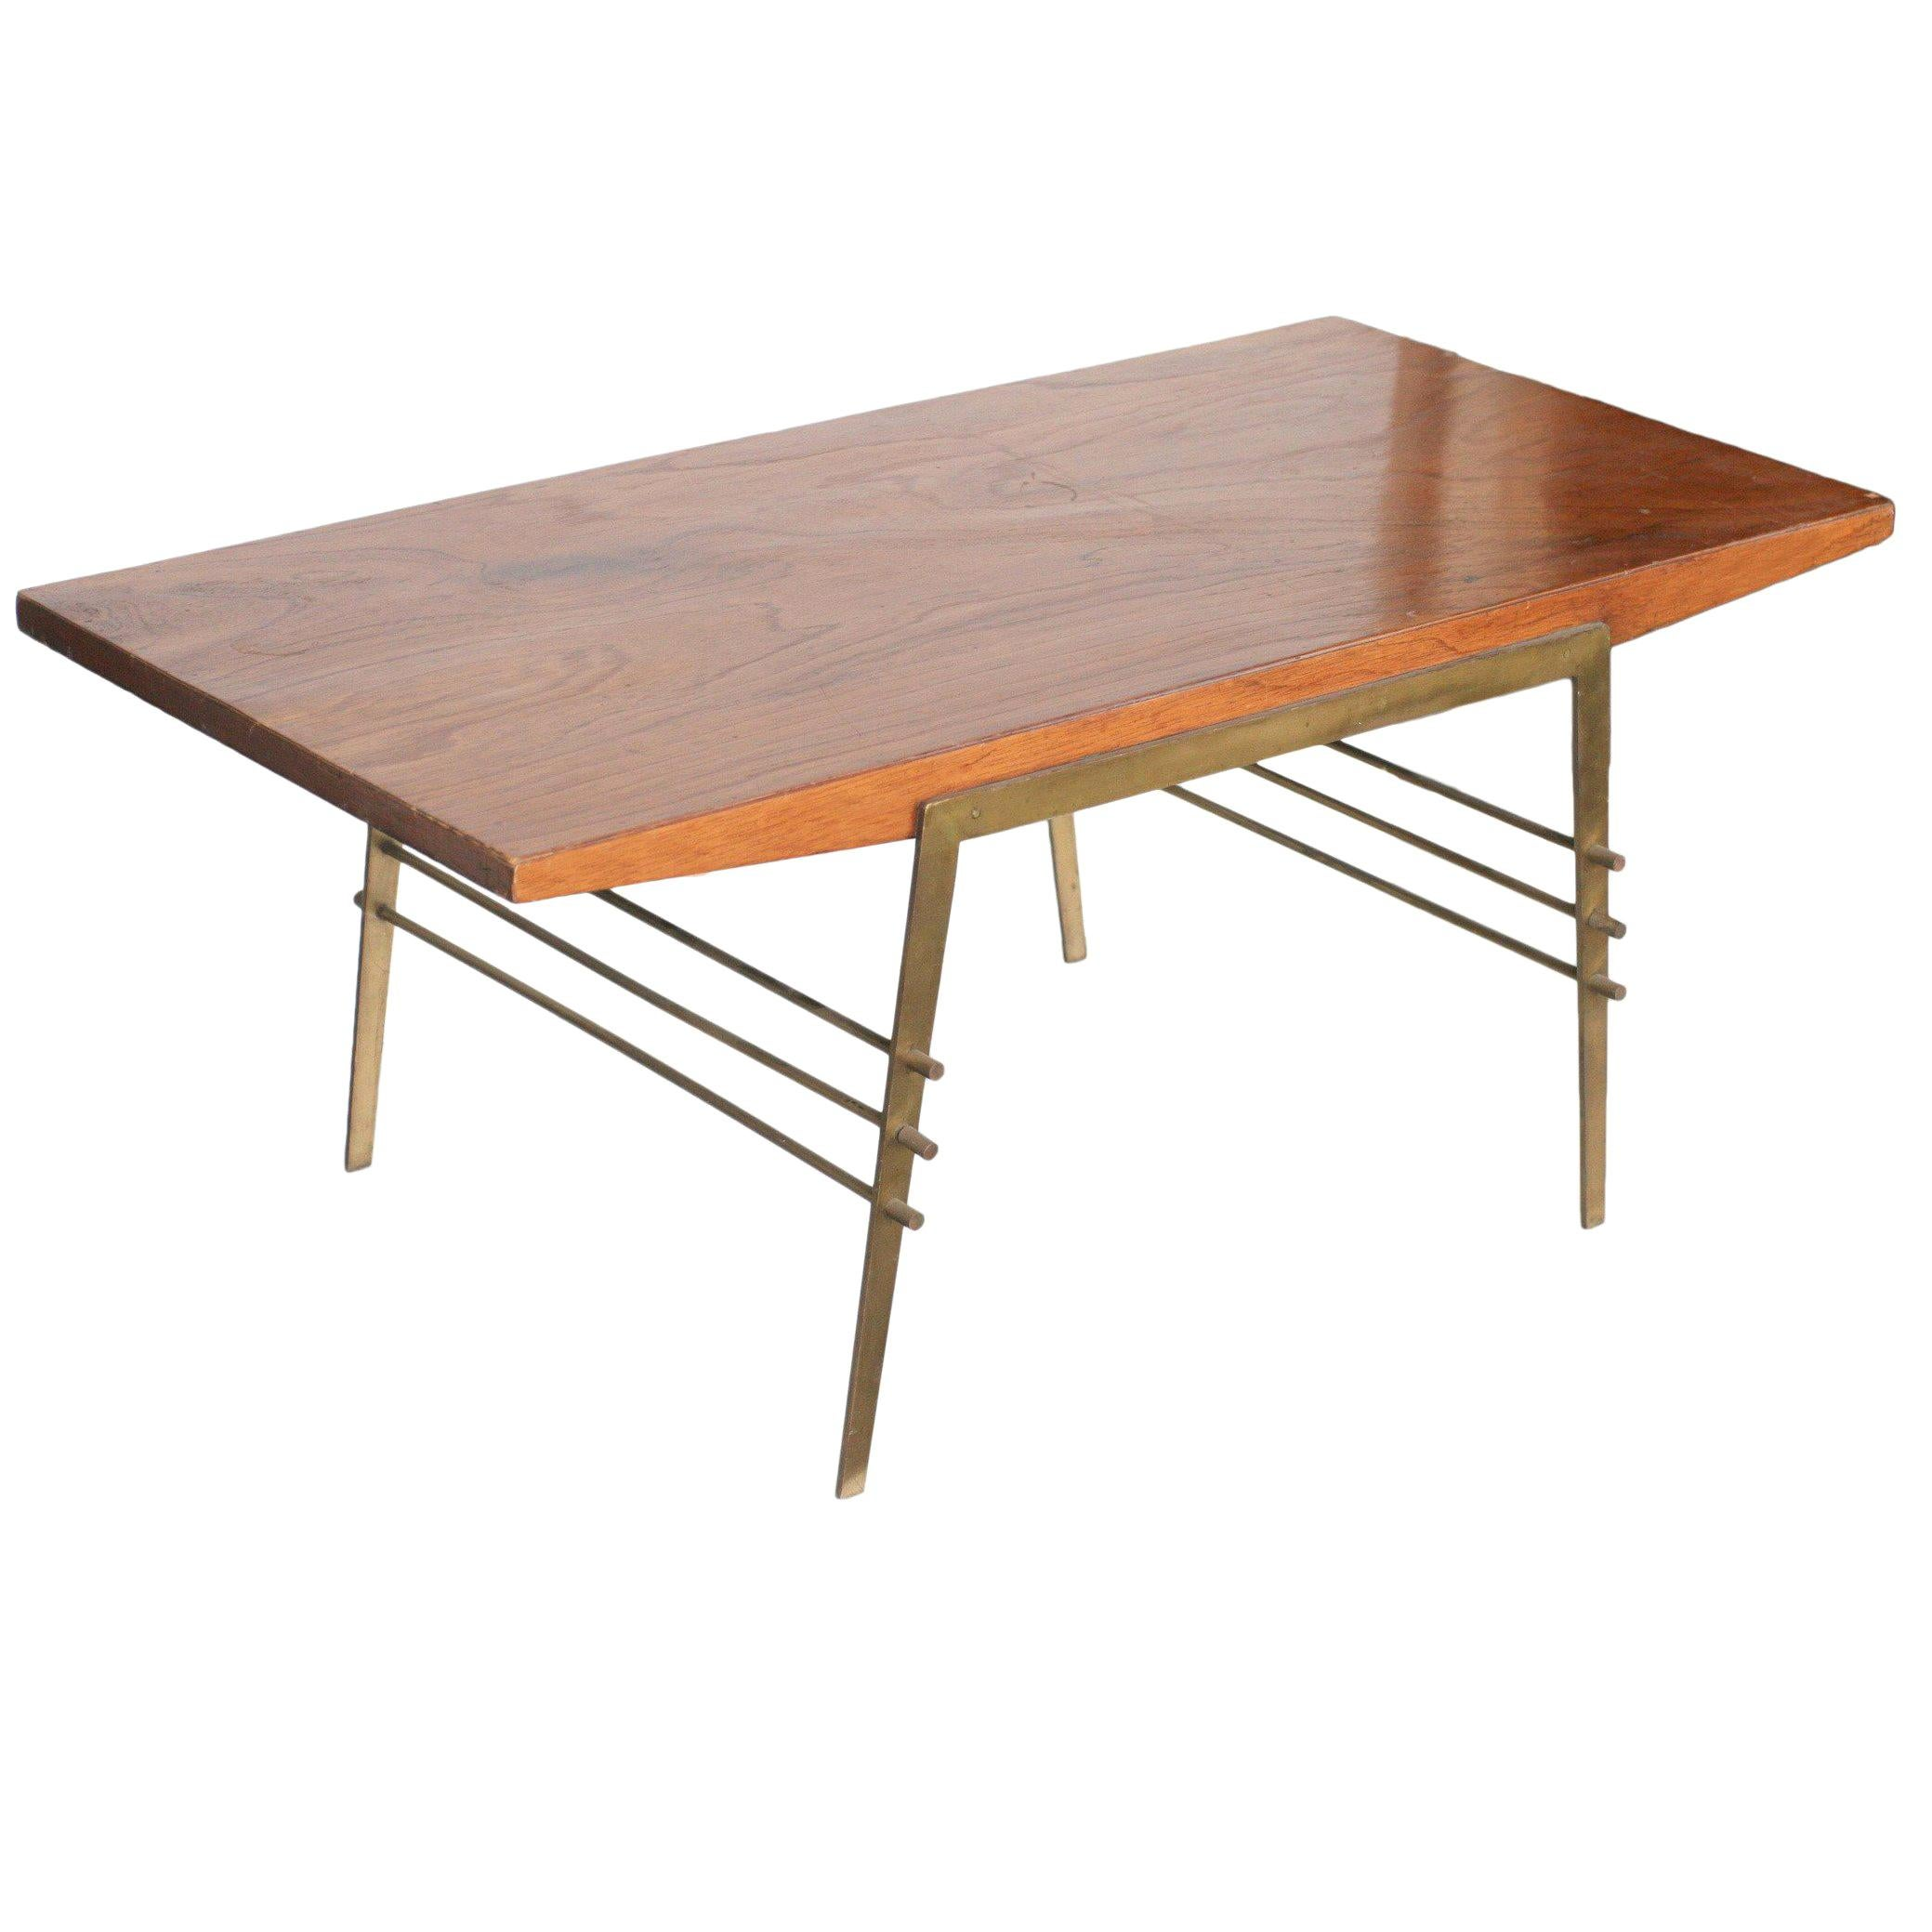 Midcentury Oak Coffee Table with Brass Architectural Base